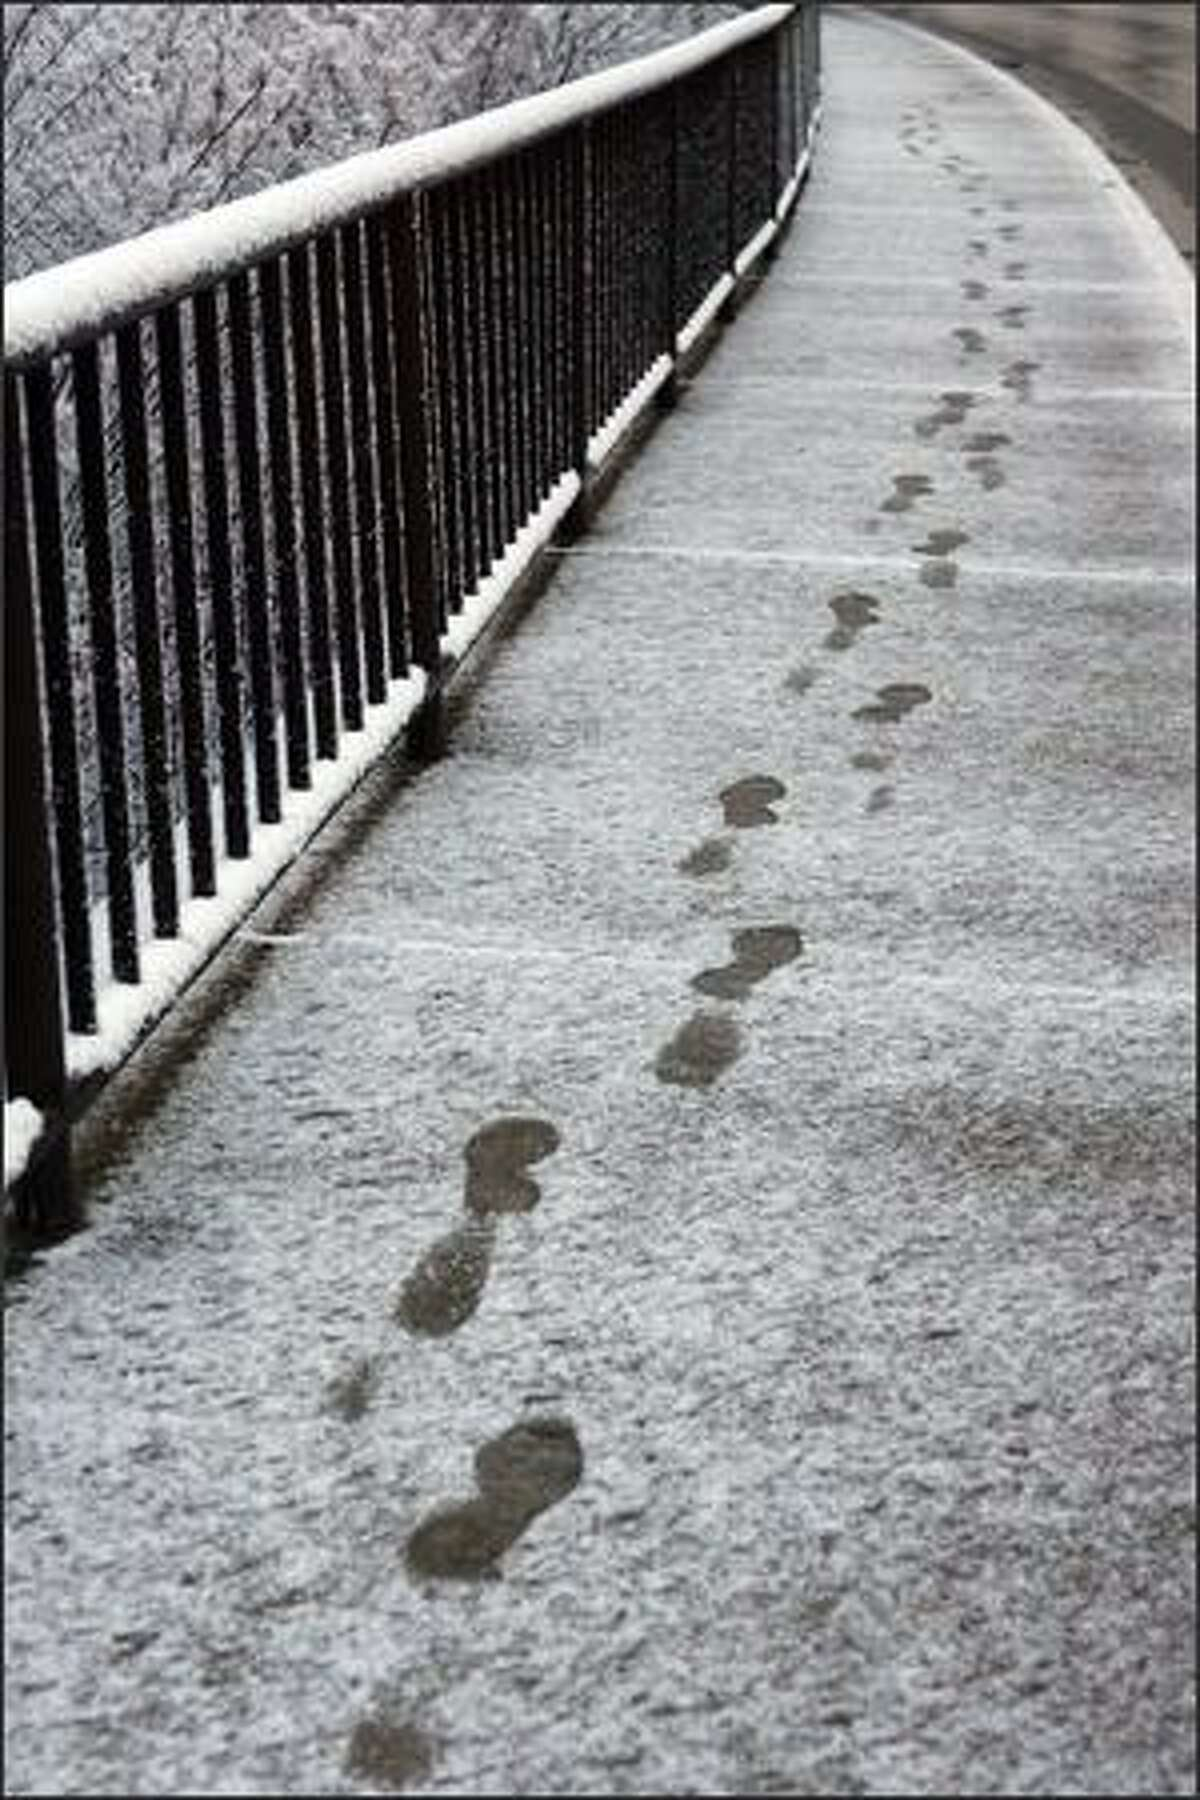 Footprints in snow on a sidewalk along U.S. Highway 527 in Snohomish County near 128th Street S.W. Wednesday morning.